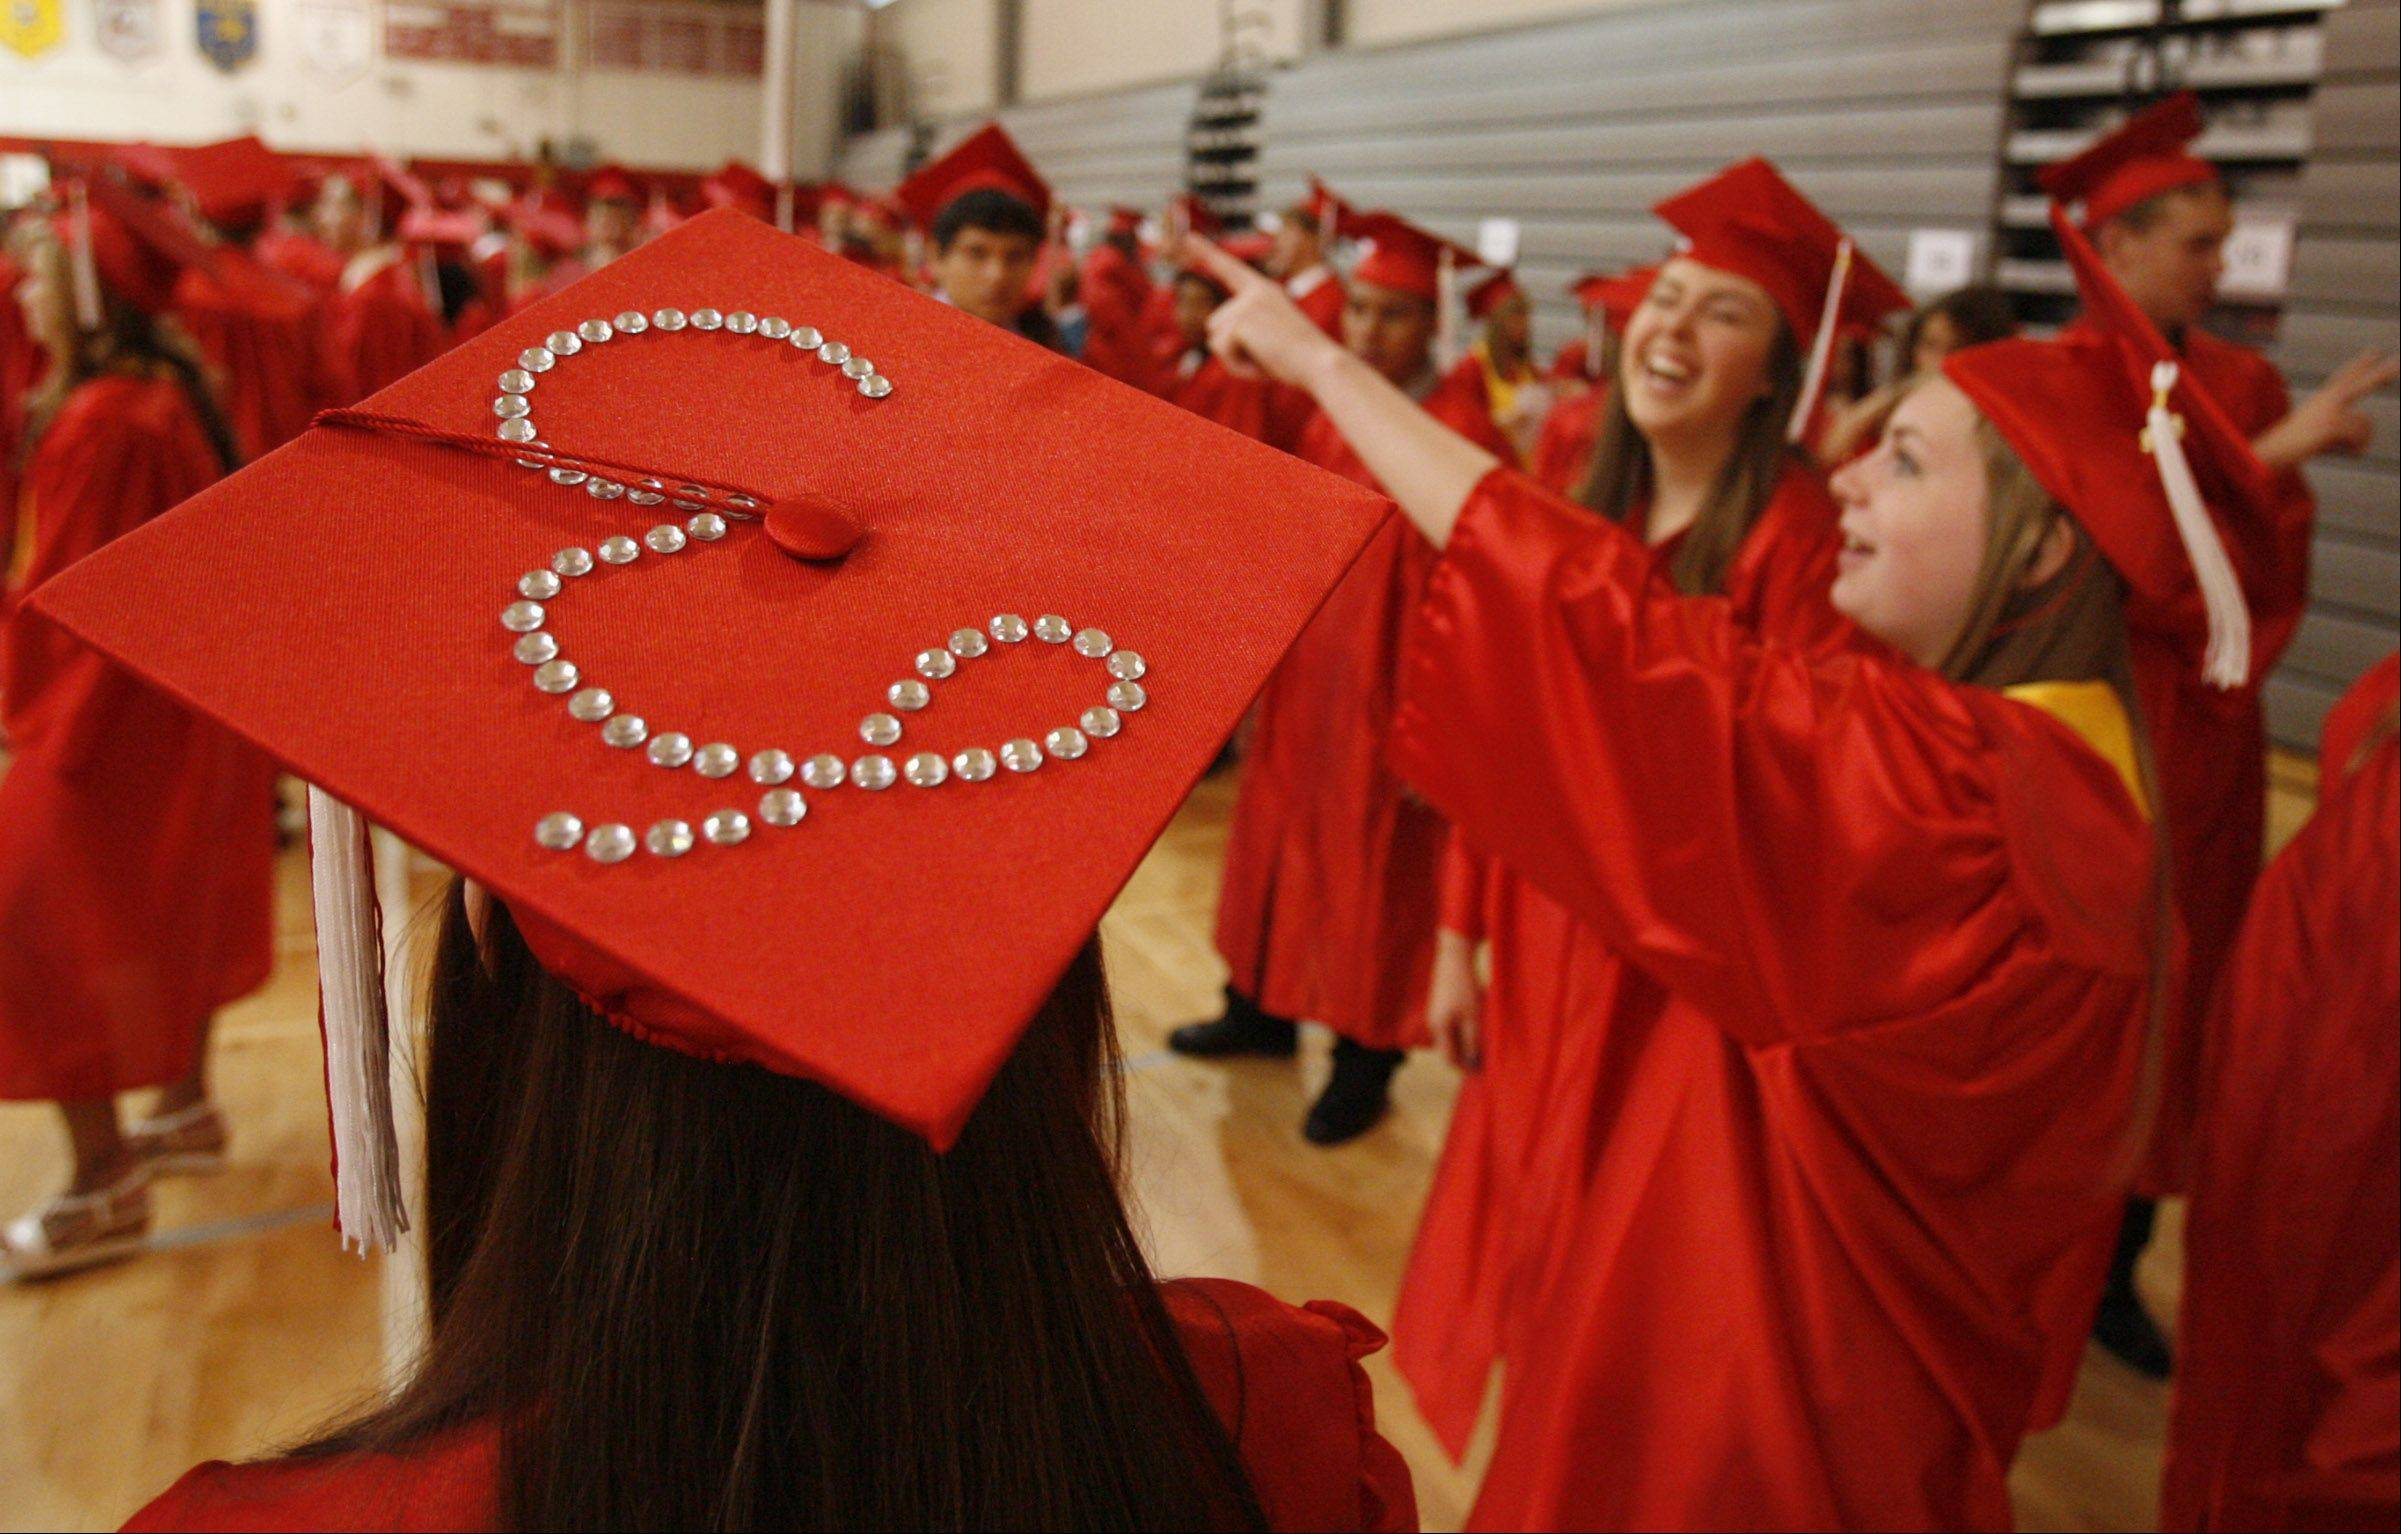 Images from the Grant High School graduation on Saturday, June 2 in Fox Lake.